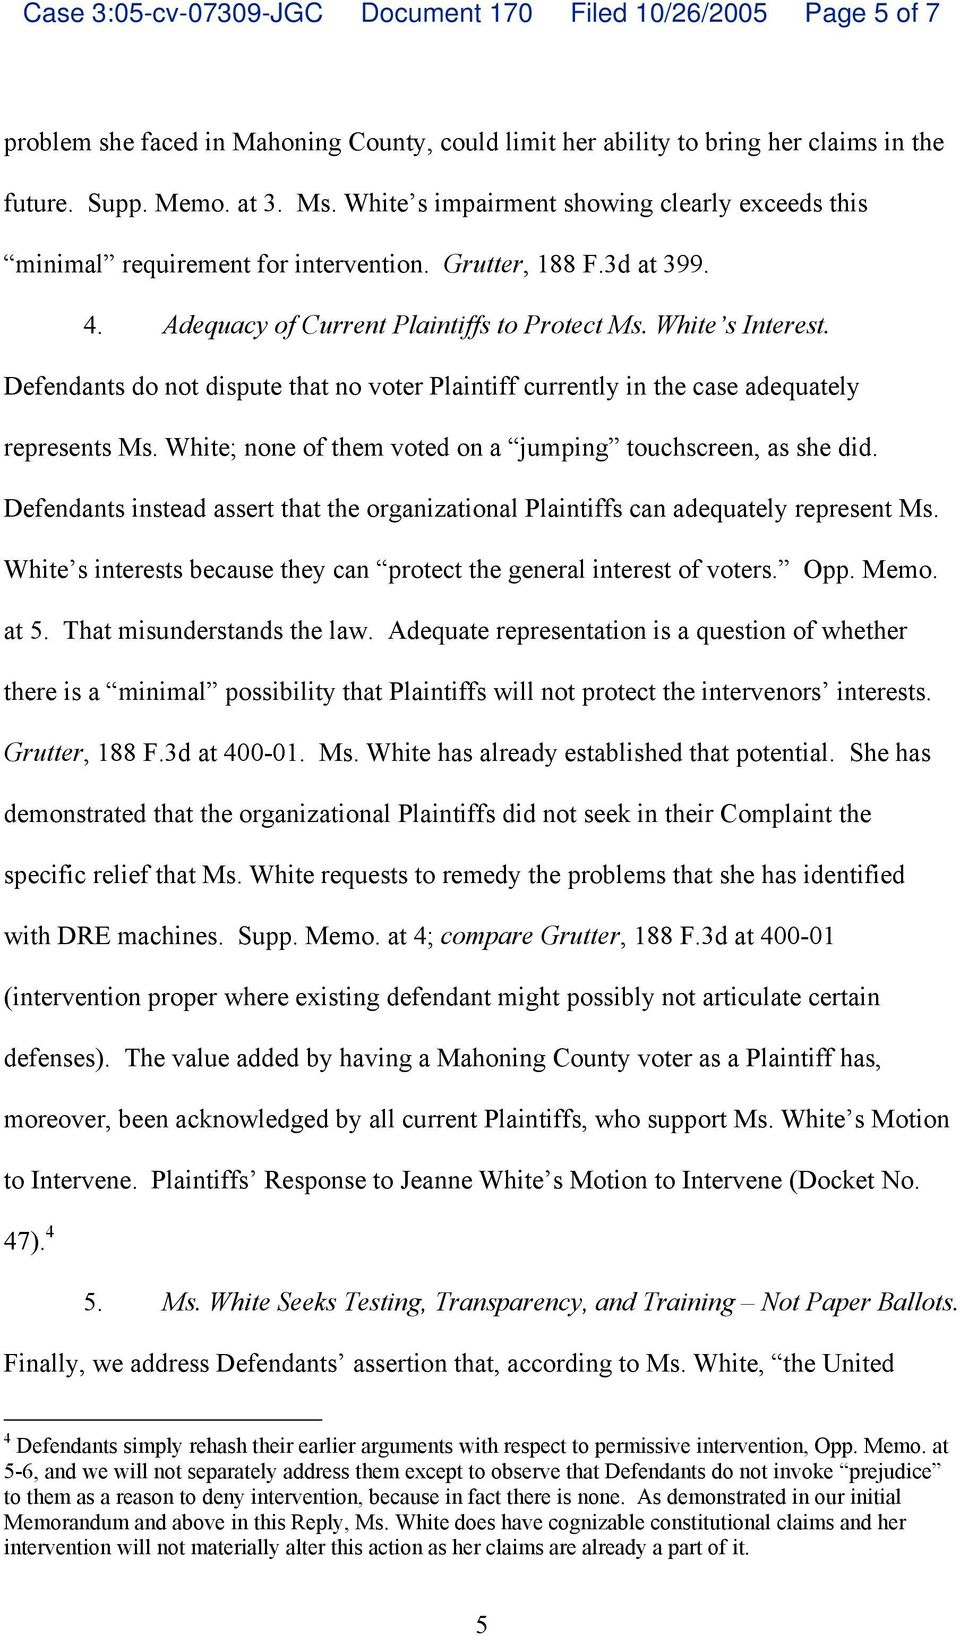 Defendants do not dispute that no voter Plaintiff currently in the case adequately represents Ms. White; none of them voted on a jumping touchscreen, as she did.